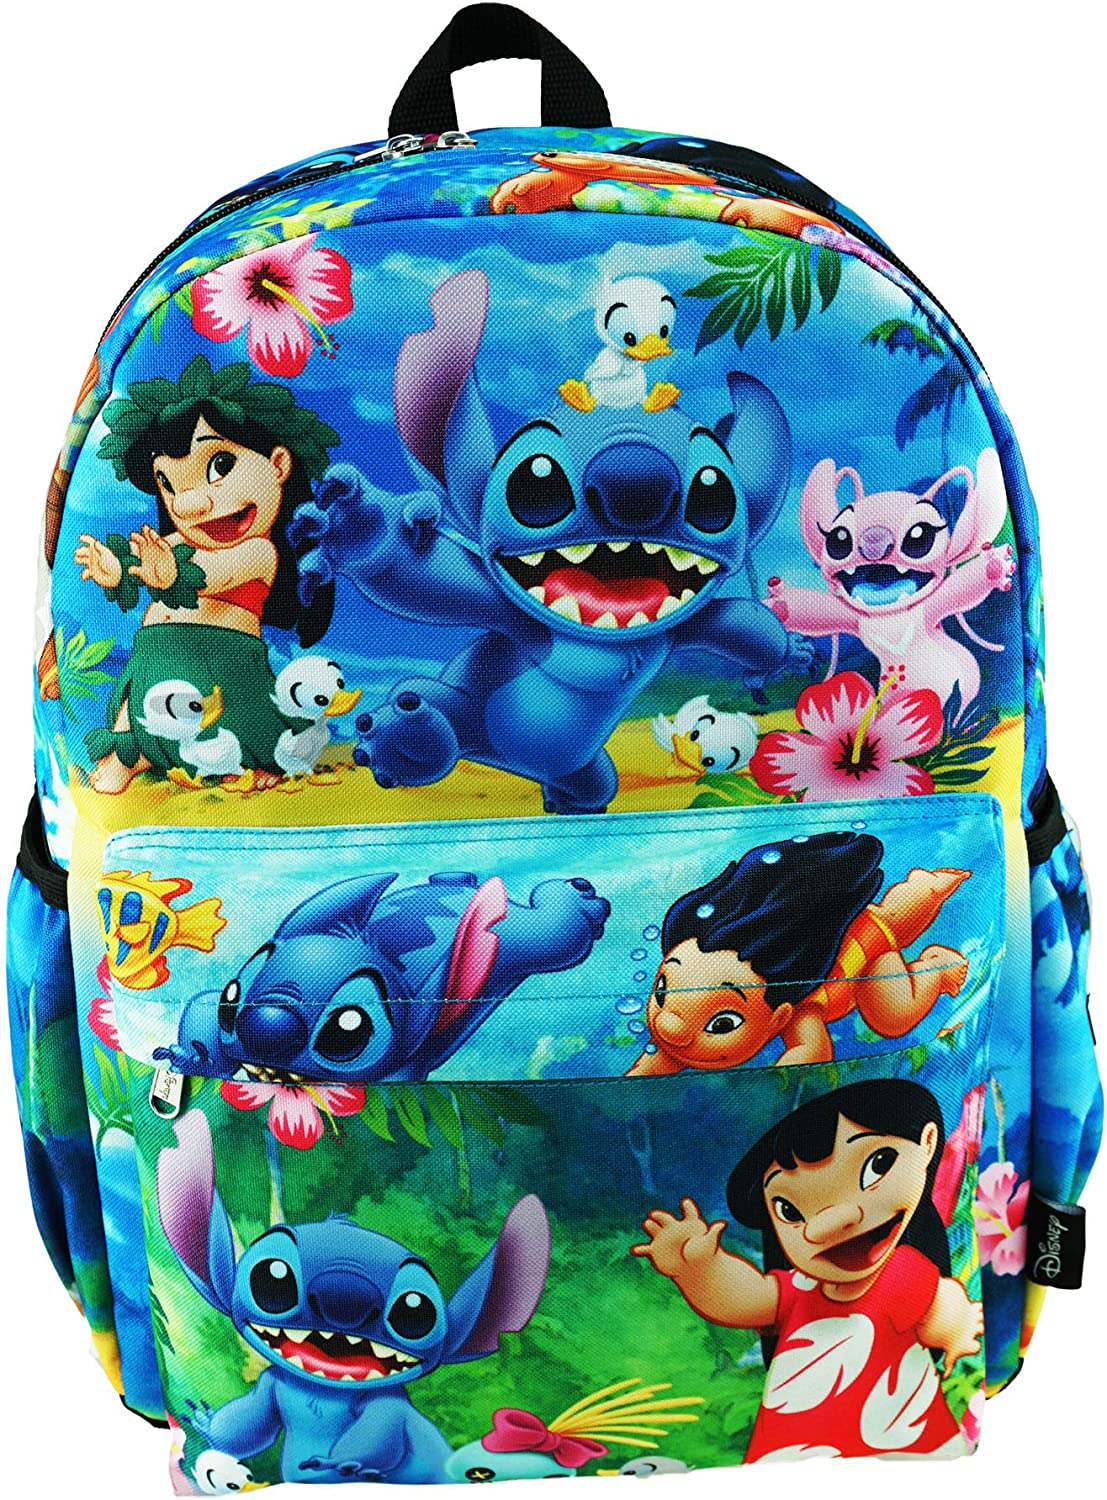 """Lilo And Stitch Deluxe Oversize Print Large 16"""" Backpack with Laptop Compartment - A19563"""